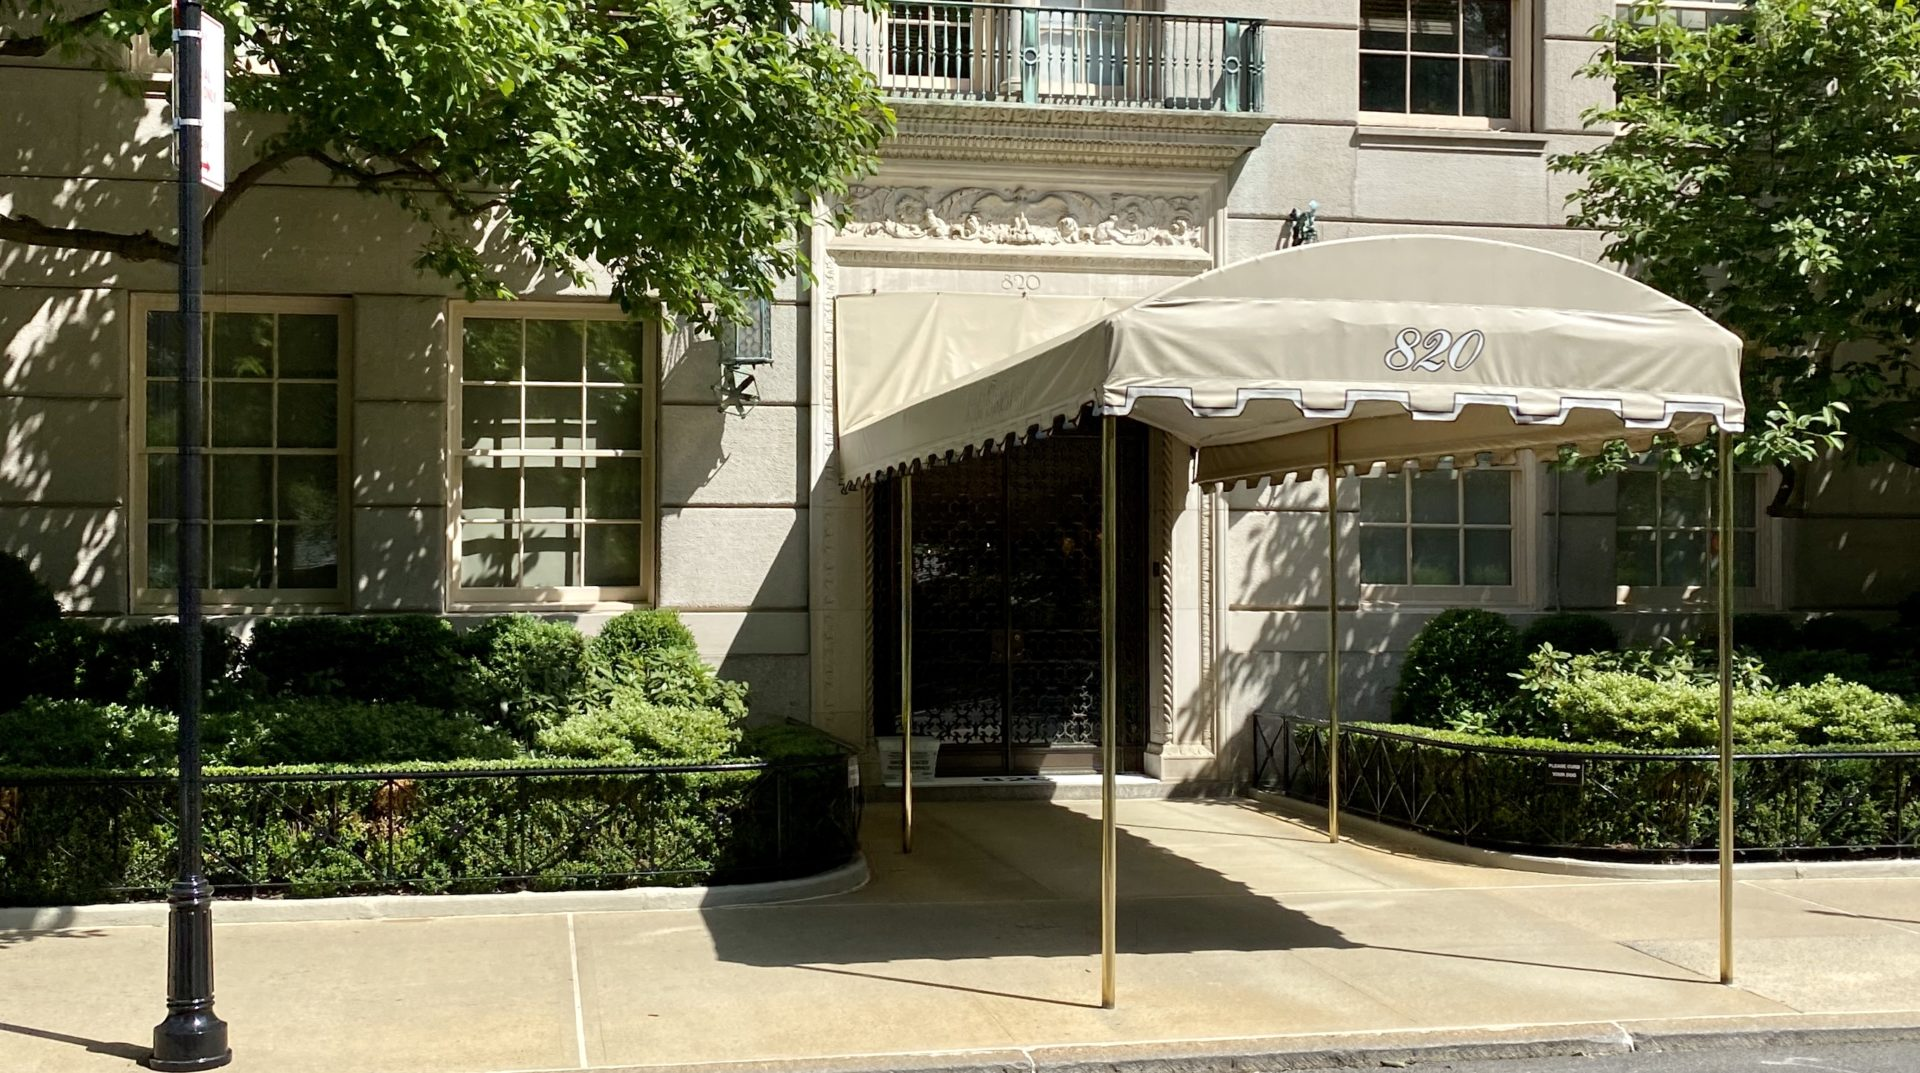 Luxury Co-op's in New York City for Sale